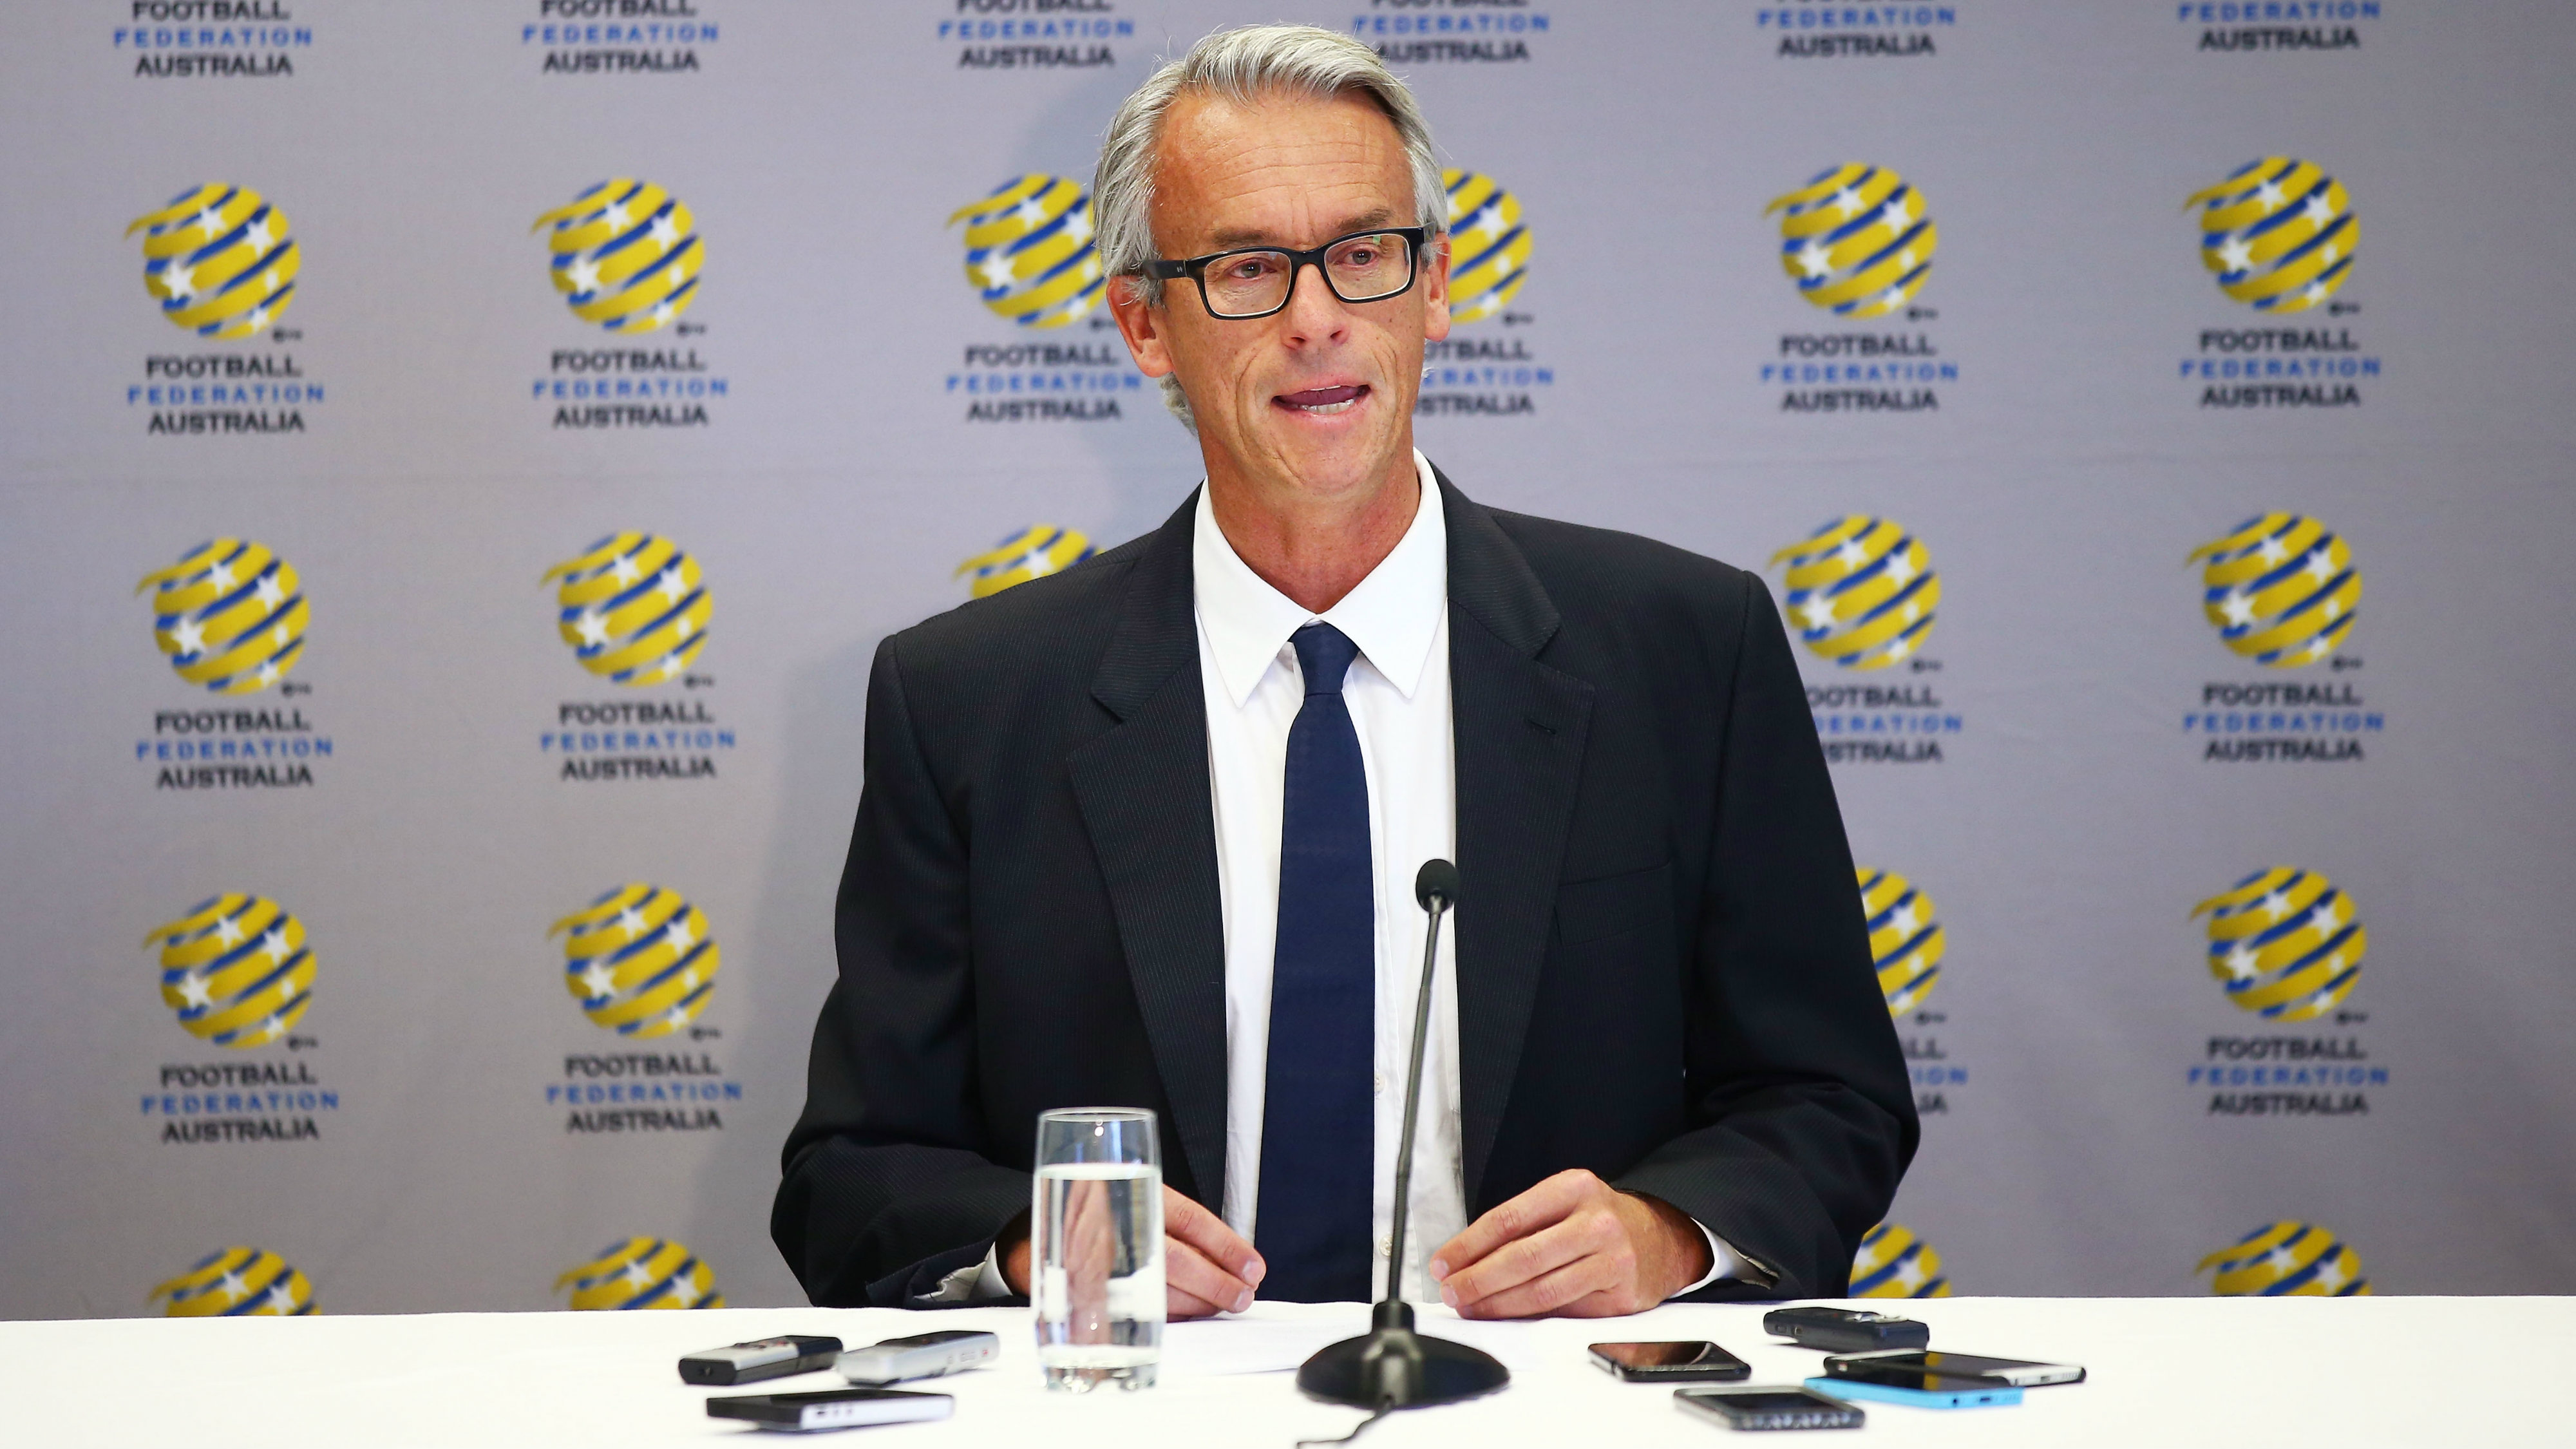 FFA and the PFA announced a new CBA for the Westfield W-League on Monday.